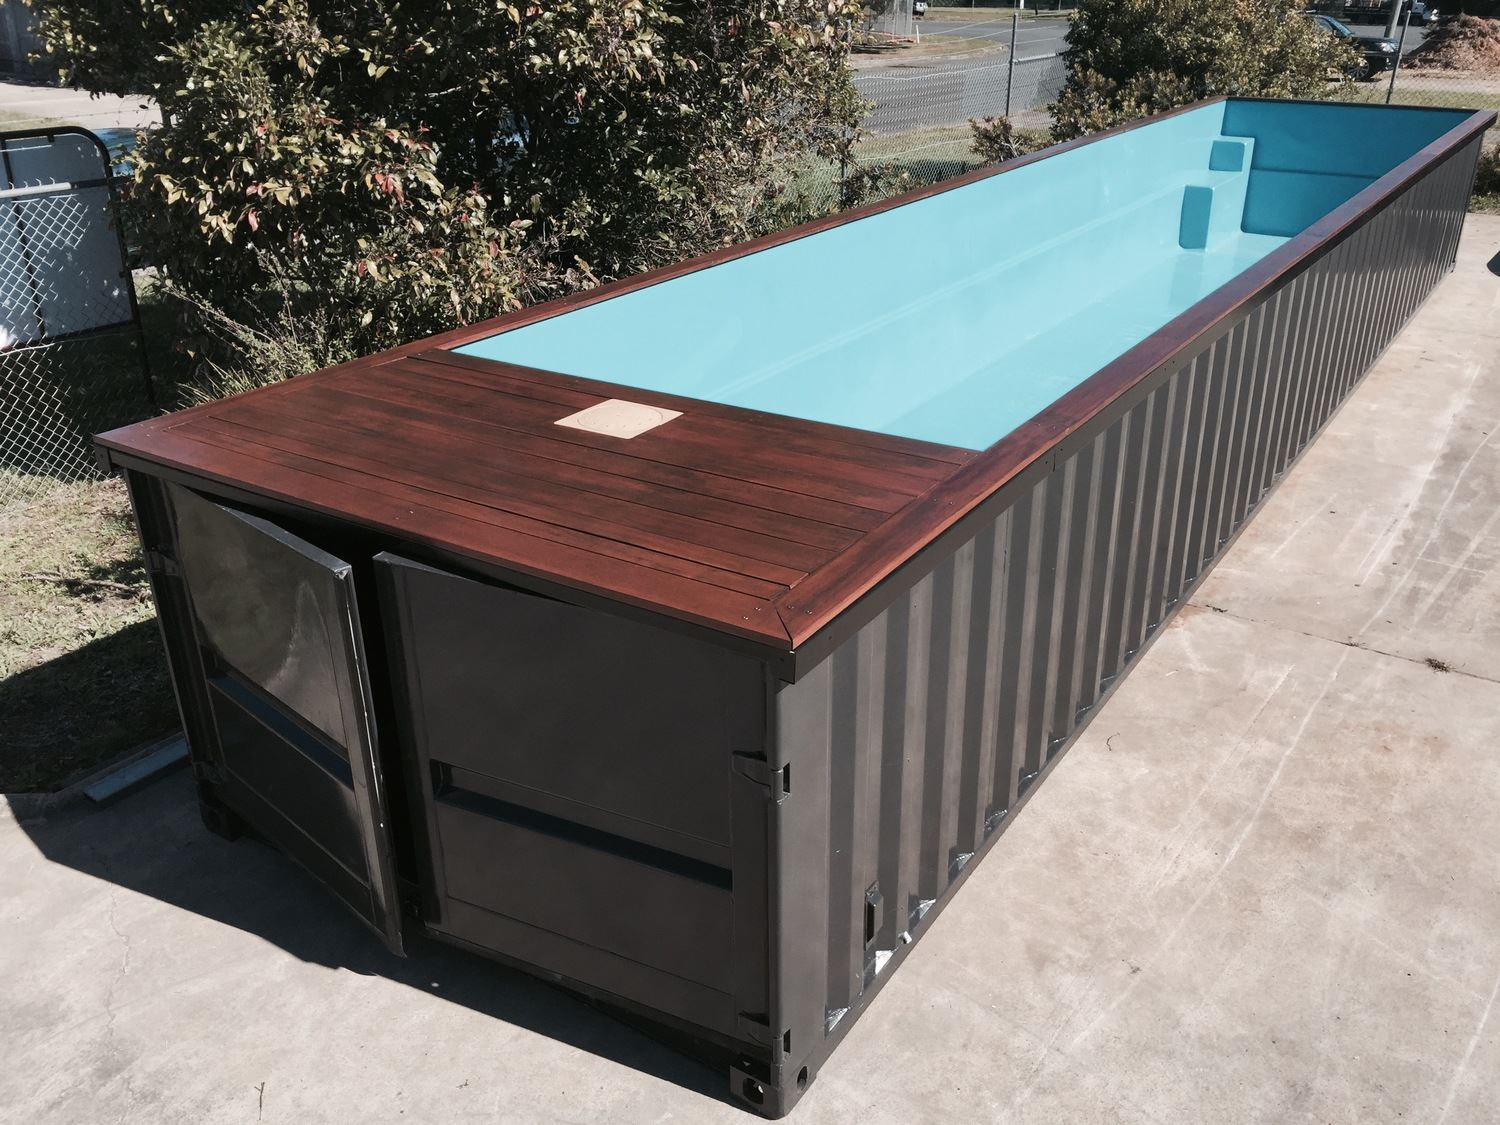 Open Fields Of Possibility! Pool Containers! - Cubner avec Piscine Conteneur